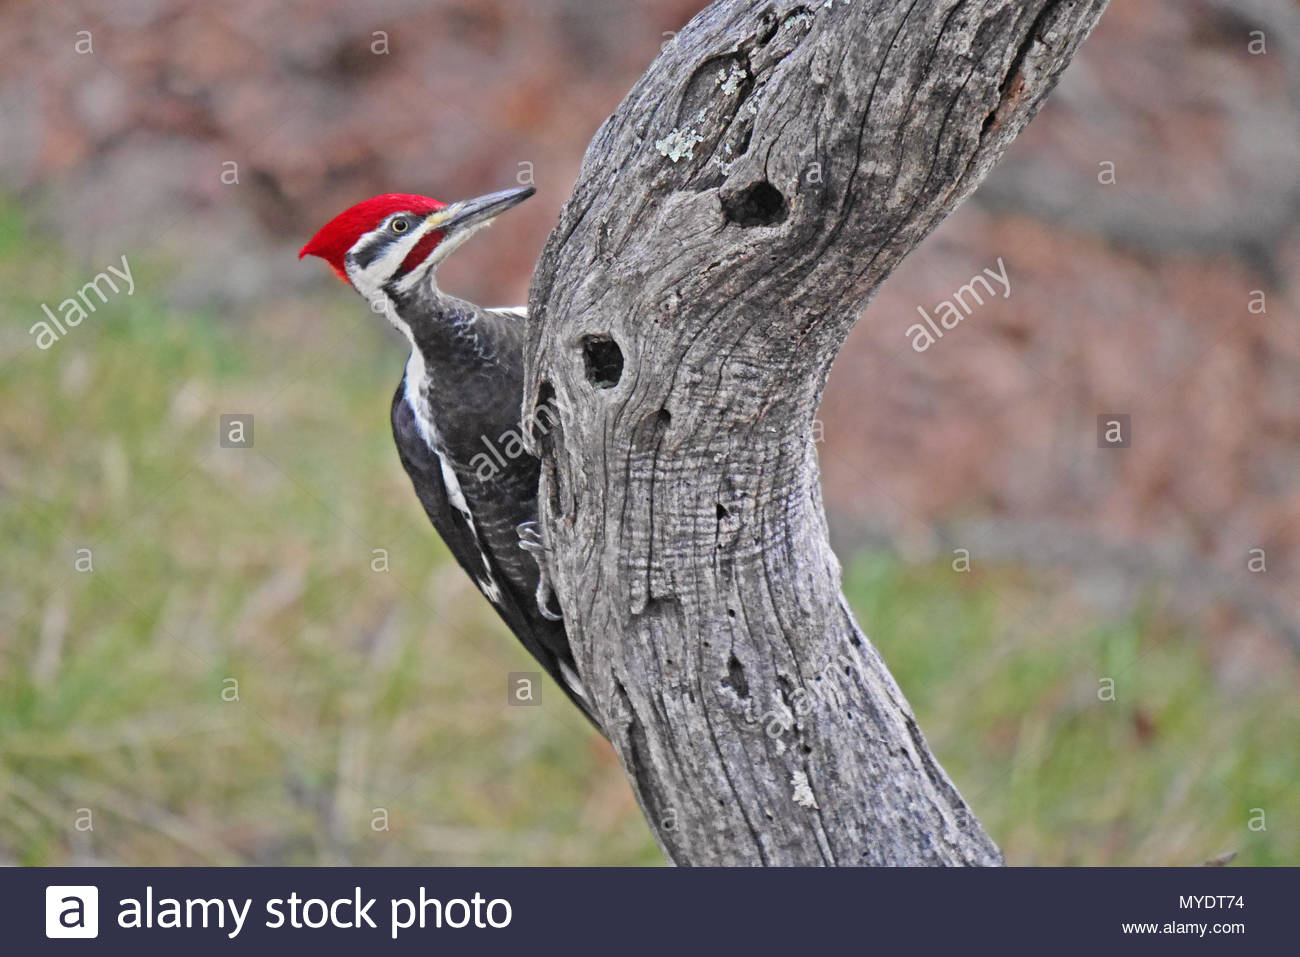 A male pileated woodpecker clings to the curve of a dead locust tree. - Stock Image